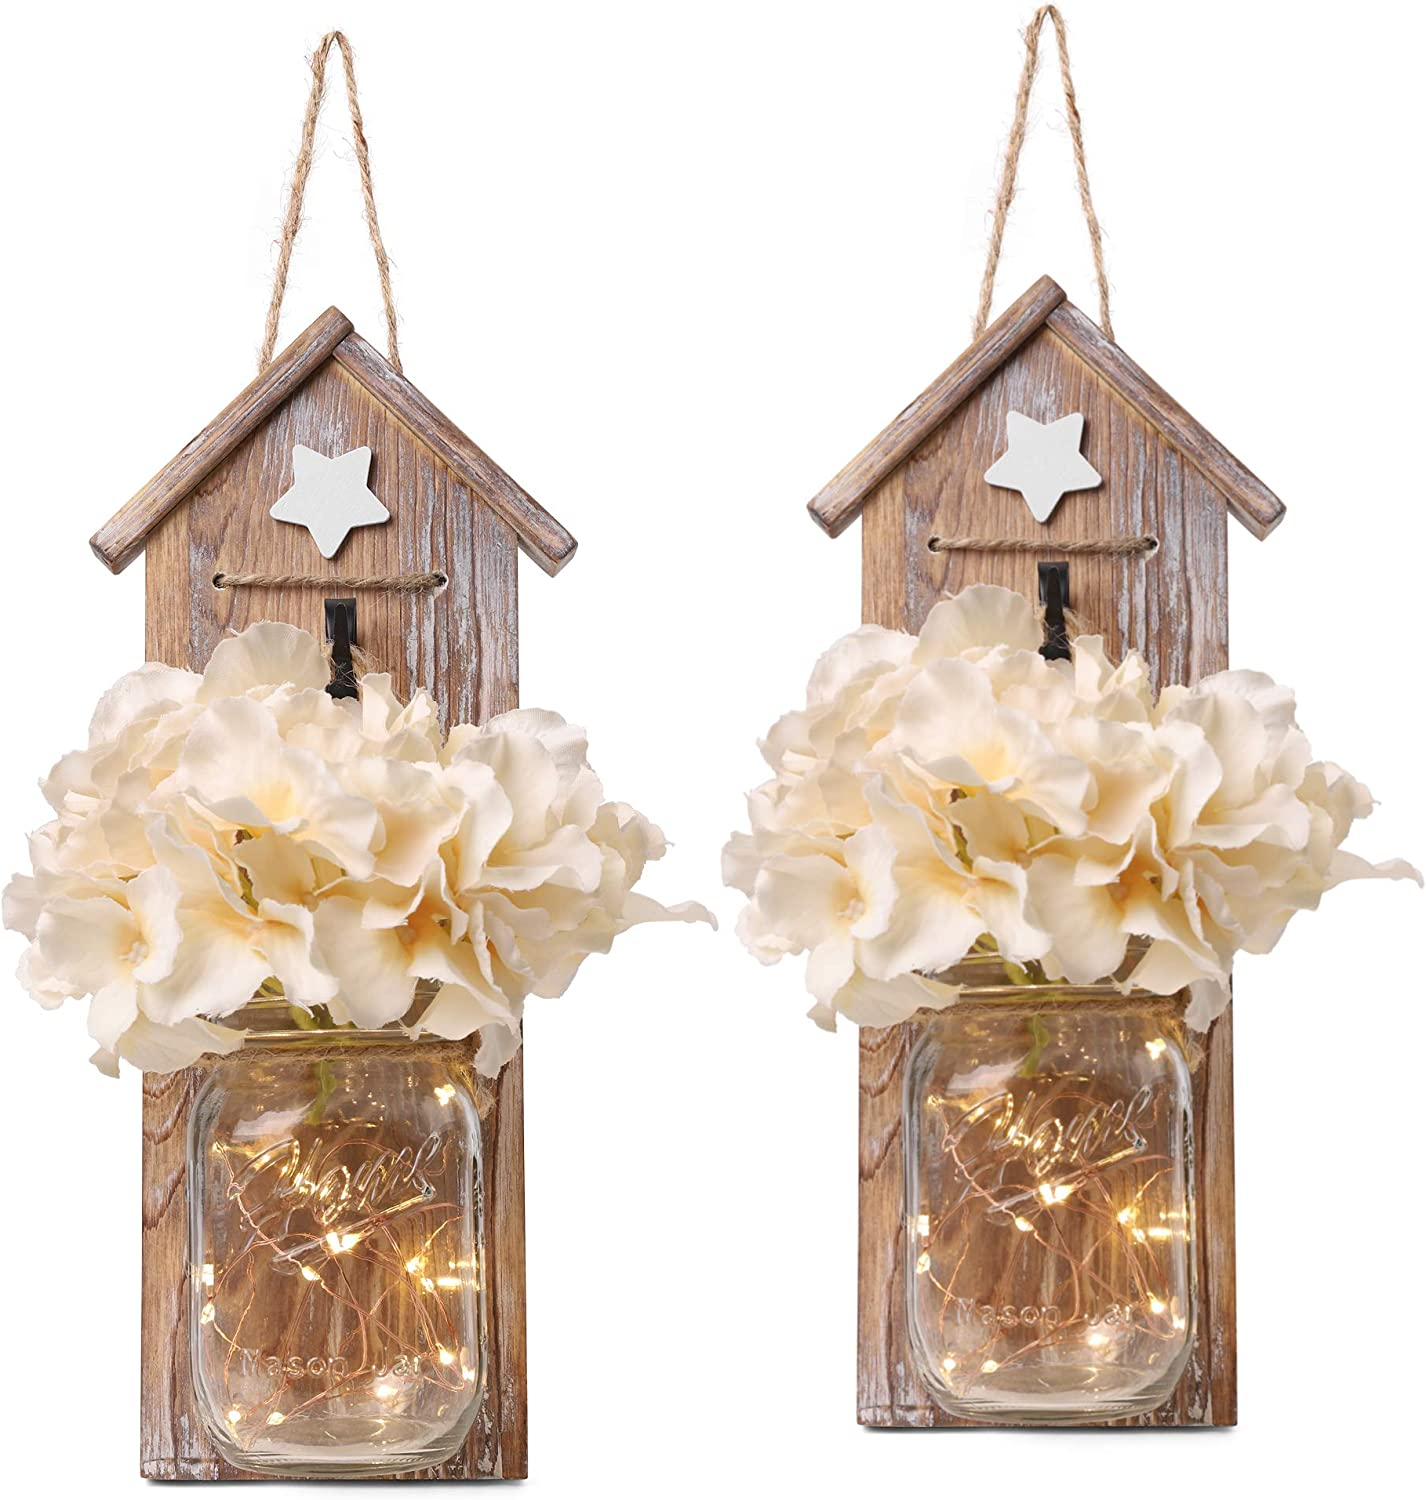 GBtroo Rustic Mason Jar Sconce Set of Two - Home Decor Hanging Wall Sconces Jars with LED Fairy Lights for Kitchen, Bathroom, Bedroom Decoration - Vintage, Brown Farmhouse Decorations